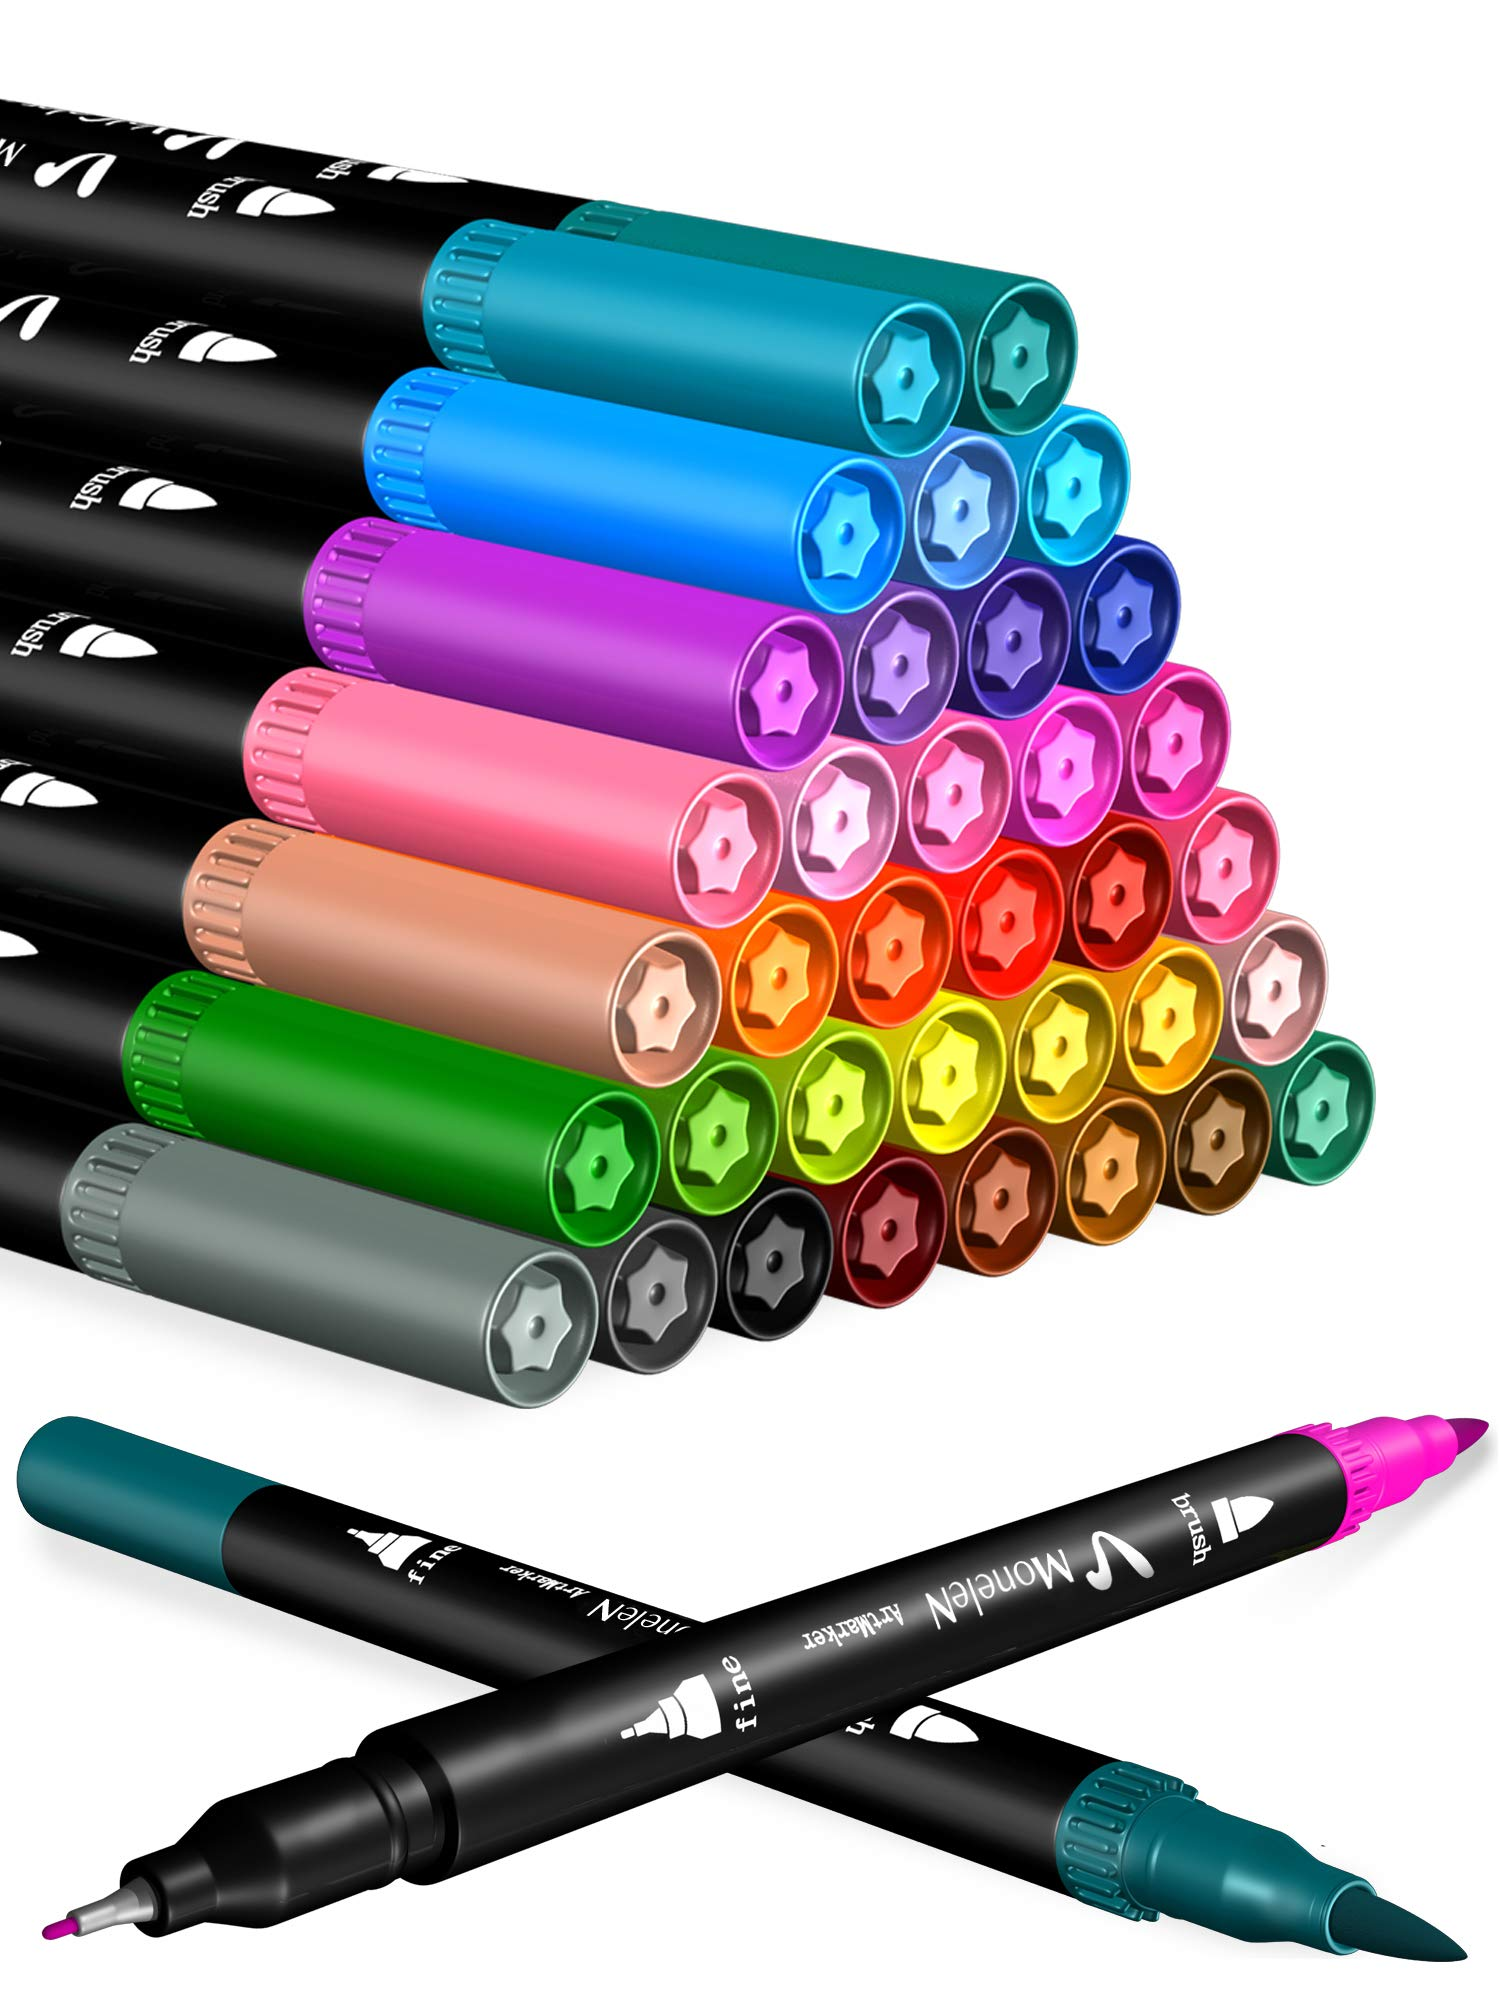 Coloring Markers Set for Adults Kids 36 Dual Brush Pens Fine Tip Art Colored Markers for Adult Coloring Books Bullet Journal Scrapbooking Supplies School Drawing Double Sided Color Marker Pen No Bleed